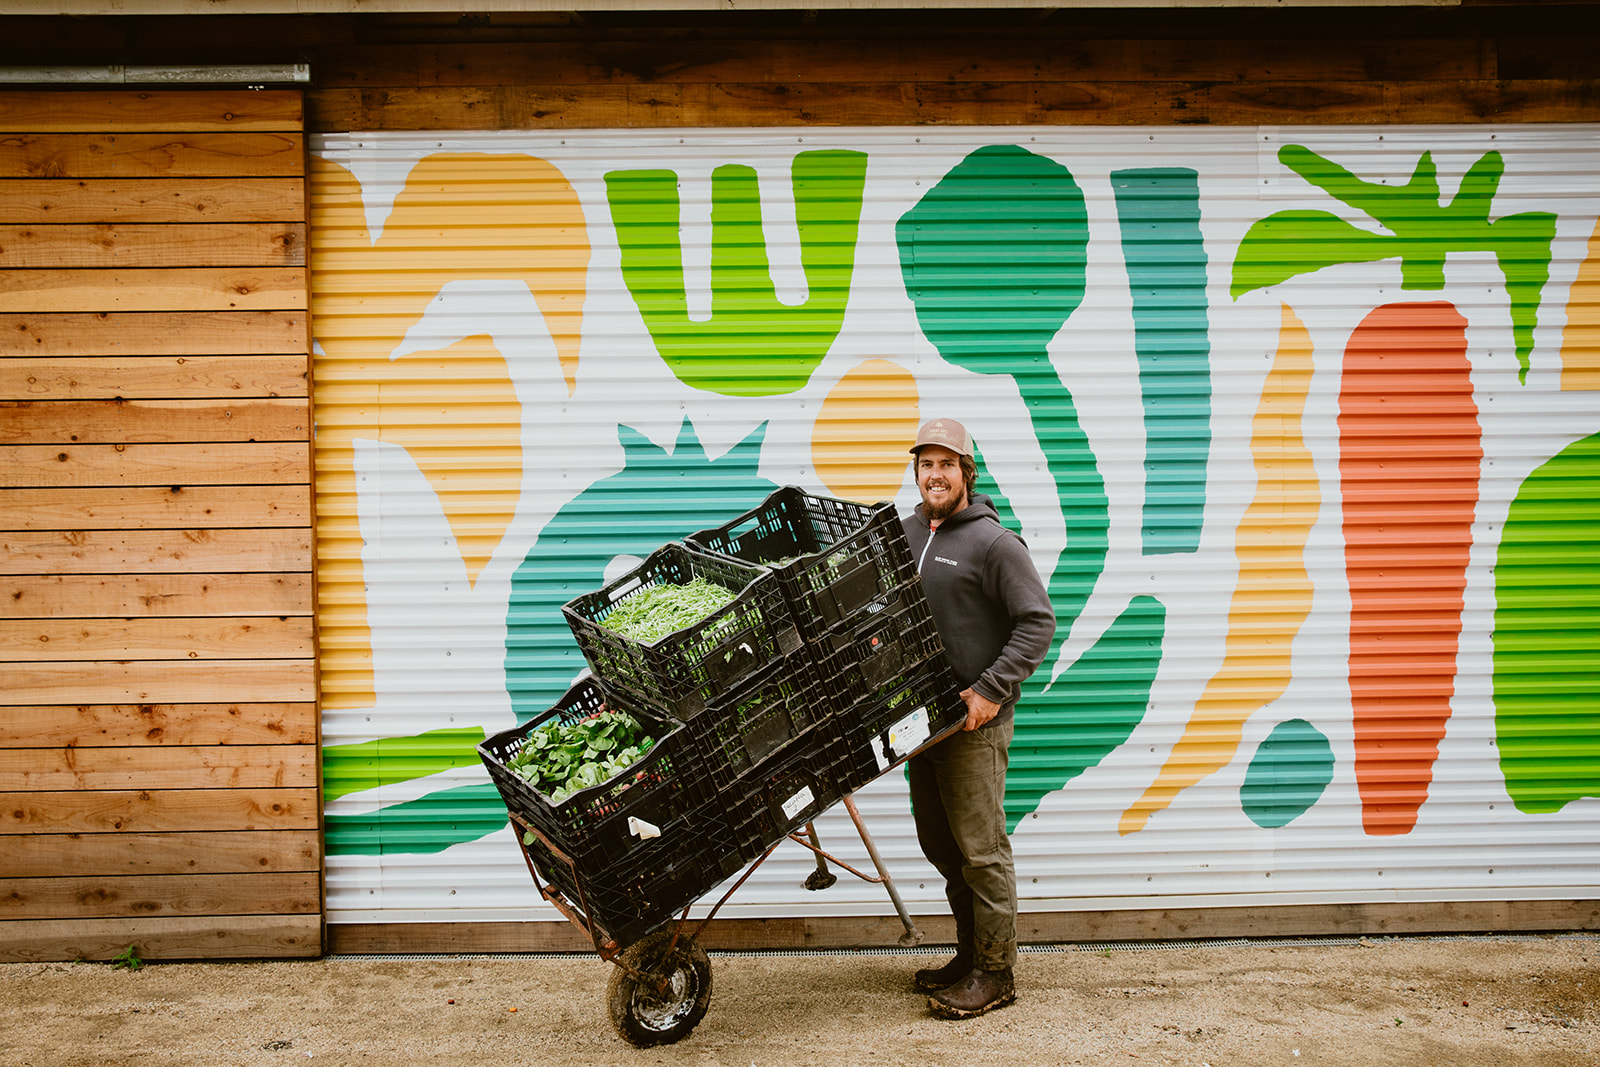 Farmer holding crates of harvested veggies.